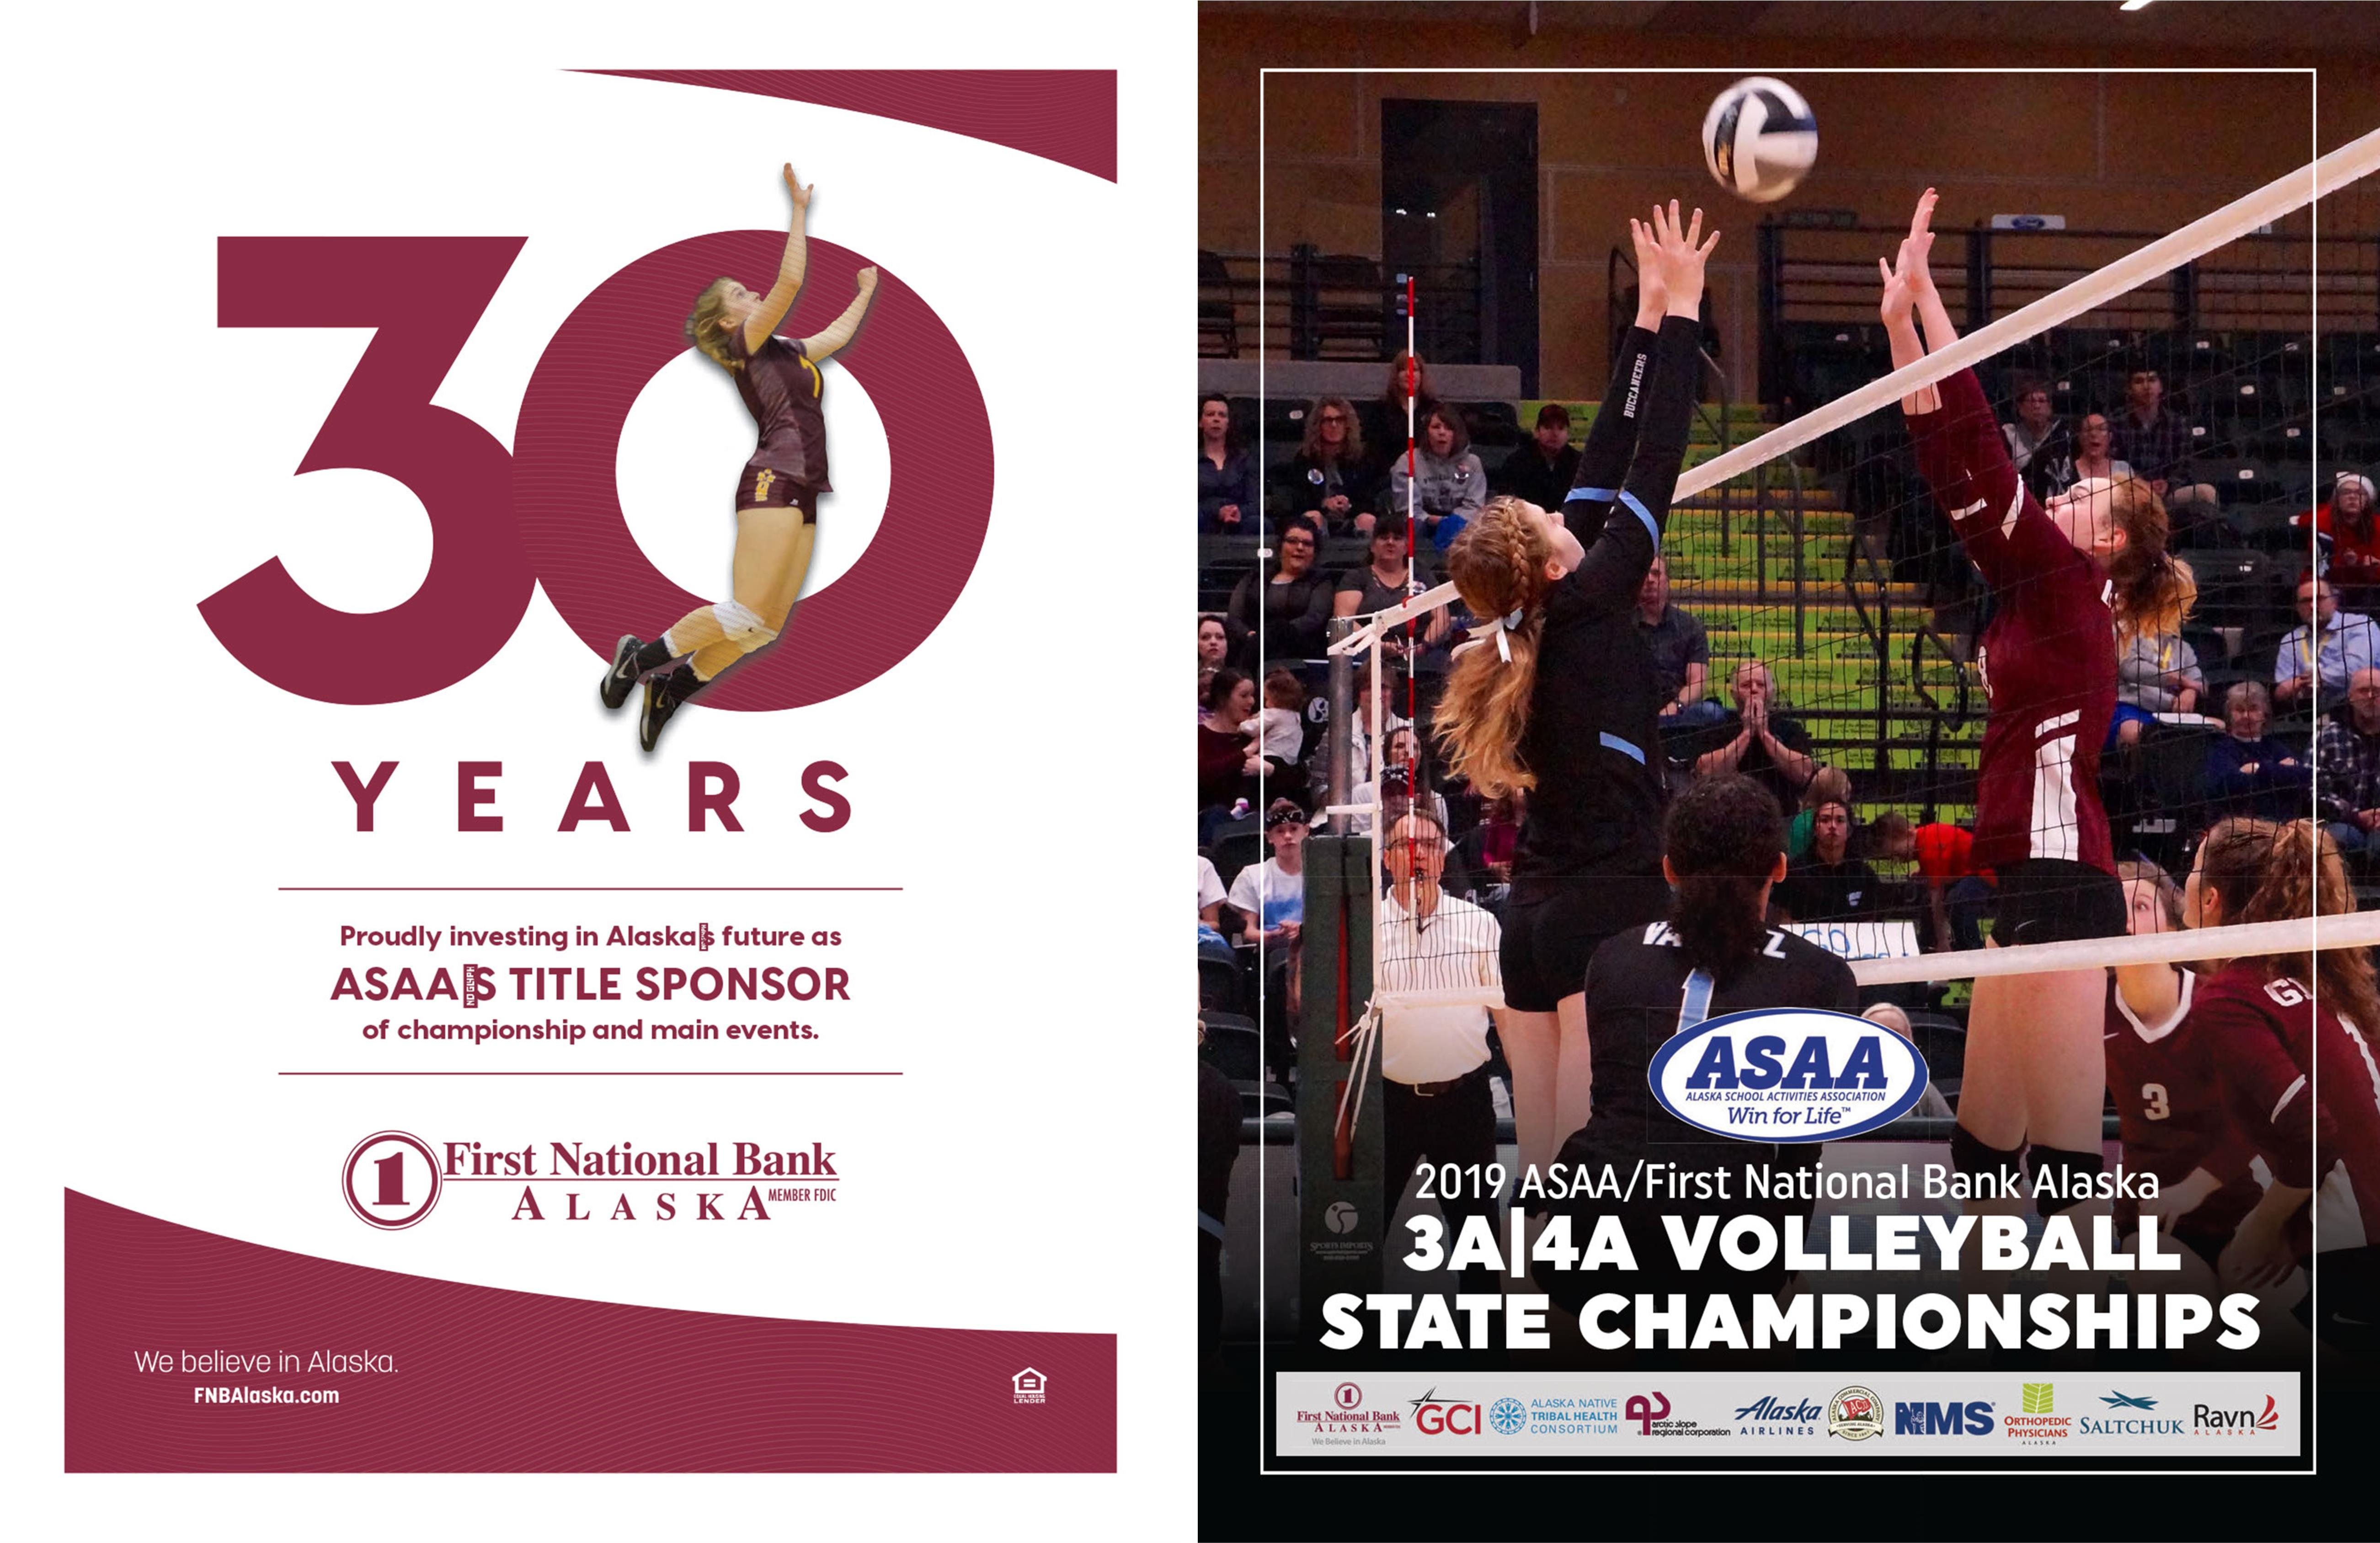 2019 ASAA/First National Bank Alaska 3A/4A Volleyball State Championships Program cover image